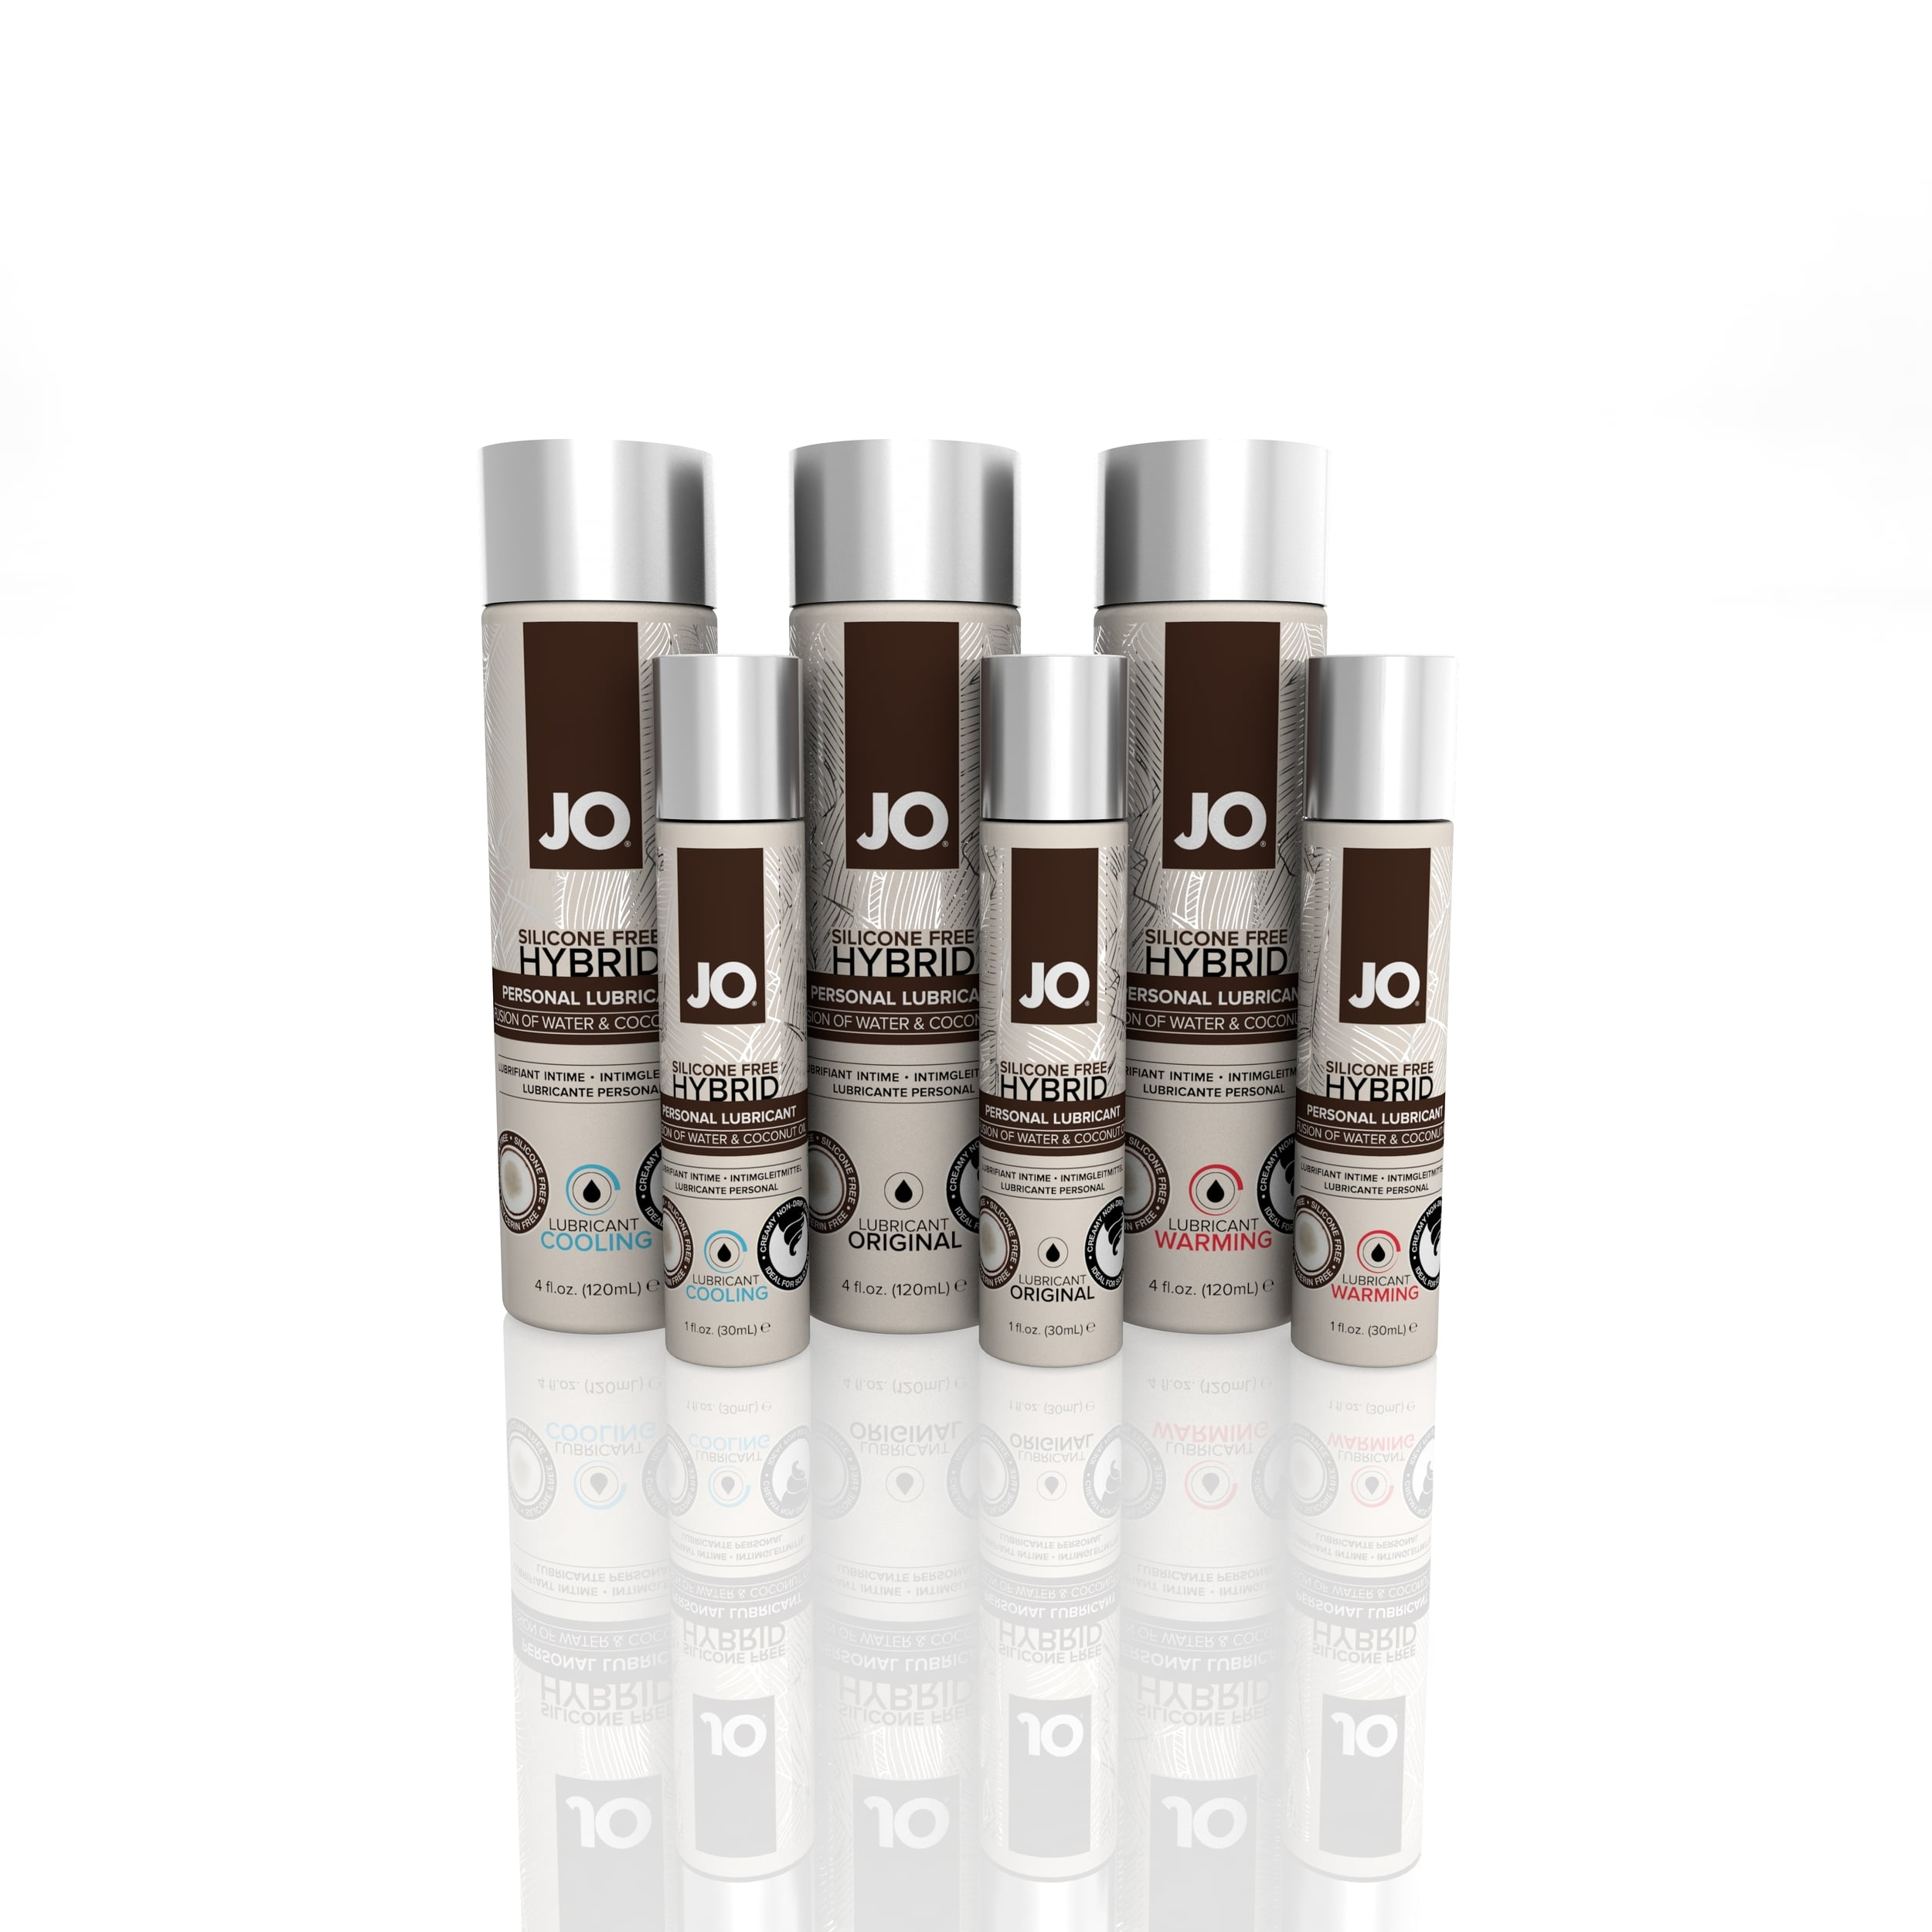 JO Silicone Free Hybrid Lubricant Collection.jpg